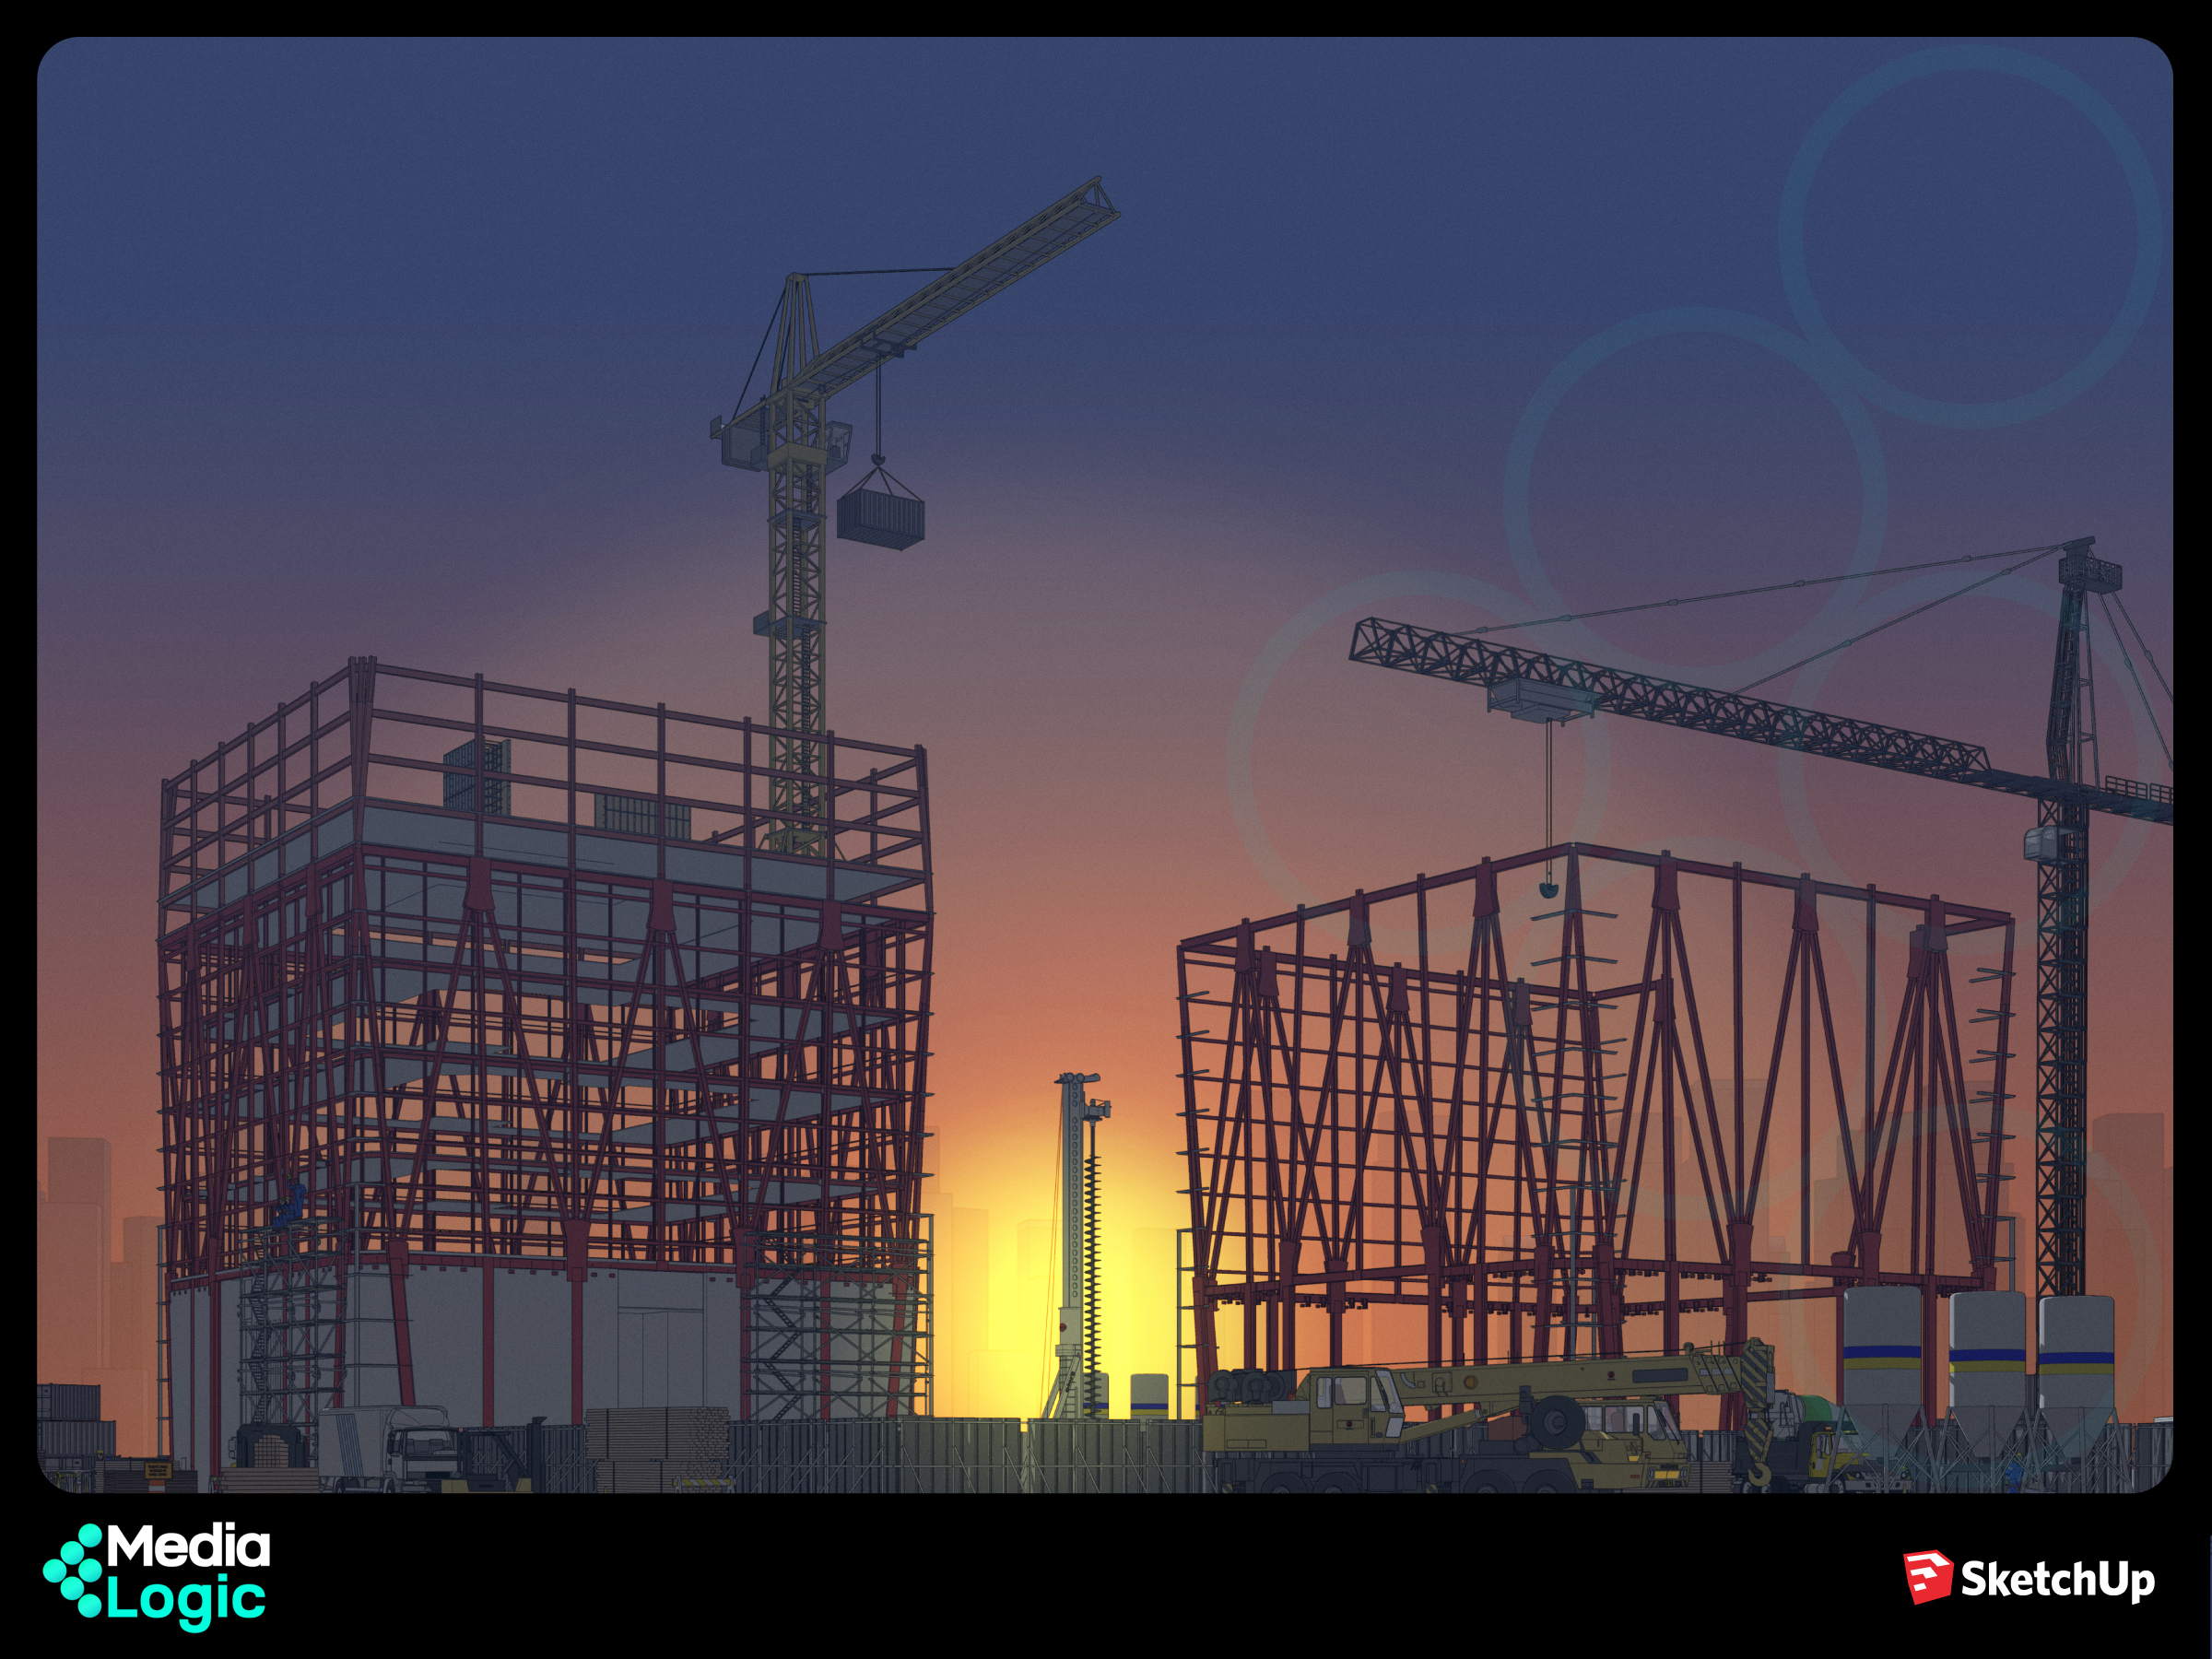 Last chance to buy SketchUp Perpetual Licenses